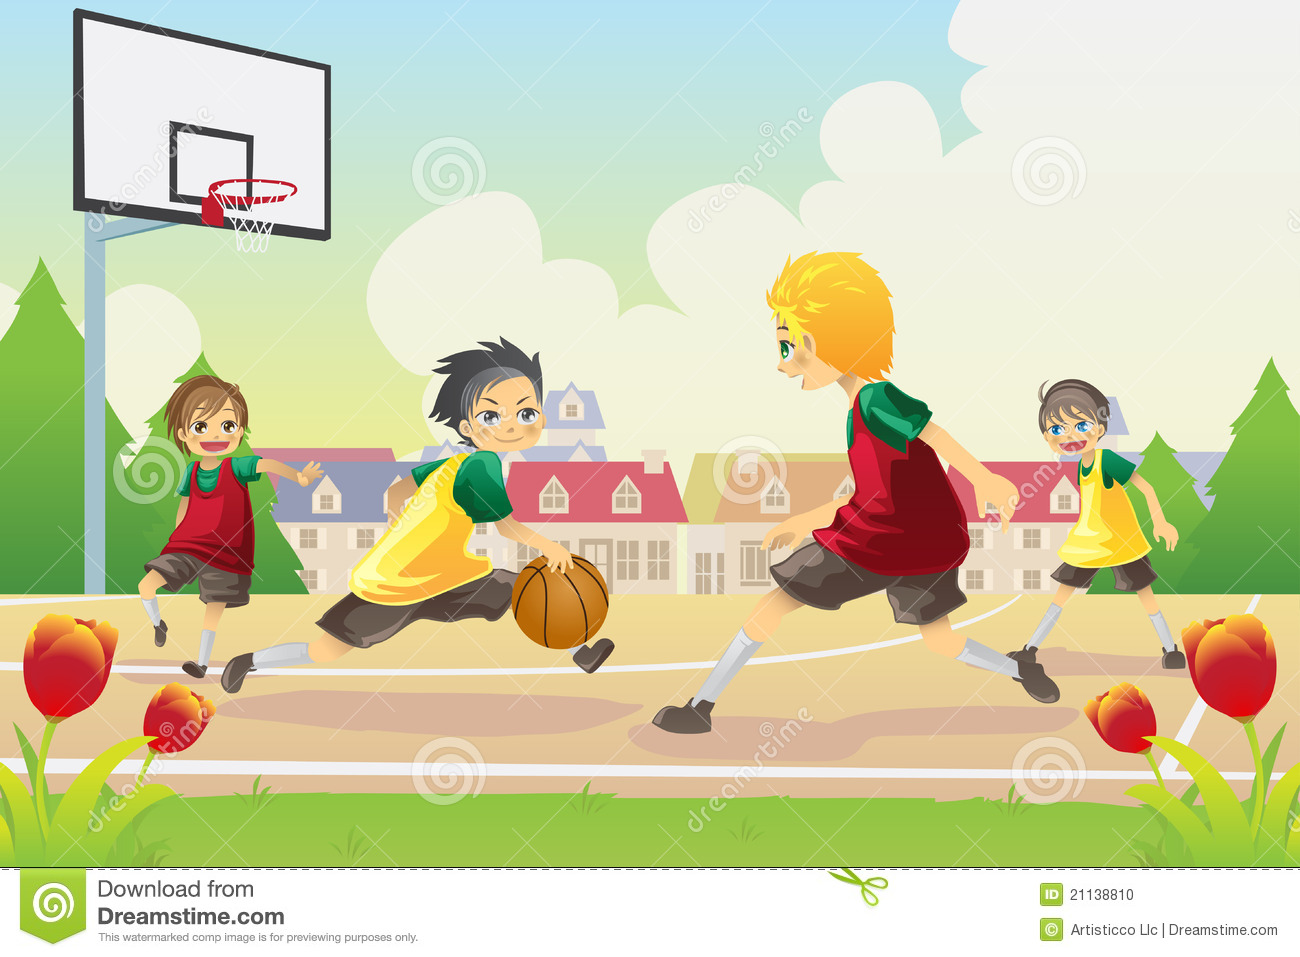 Vector Illustration Of Kids Playing Basketball In The Suburban Area